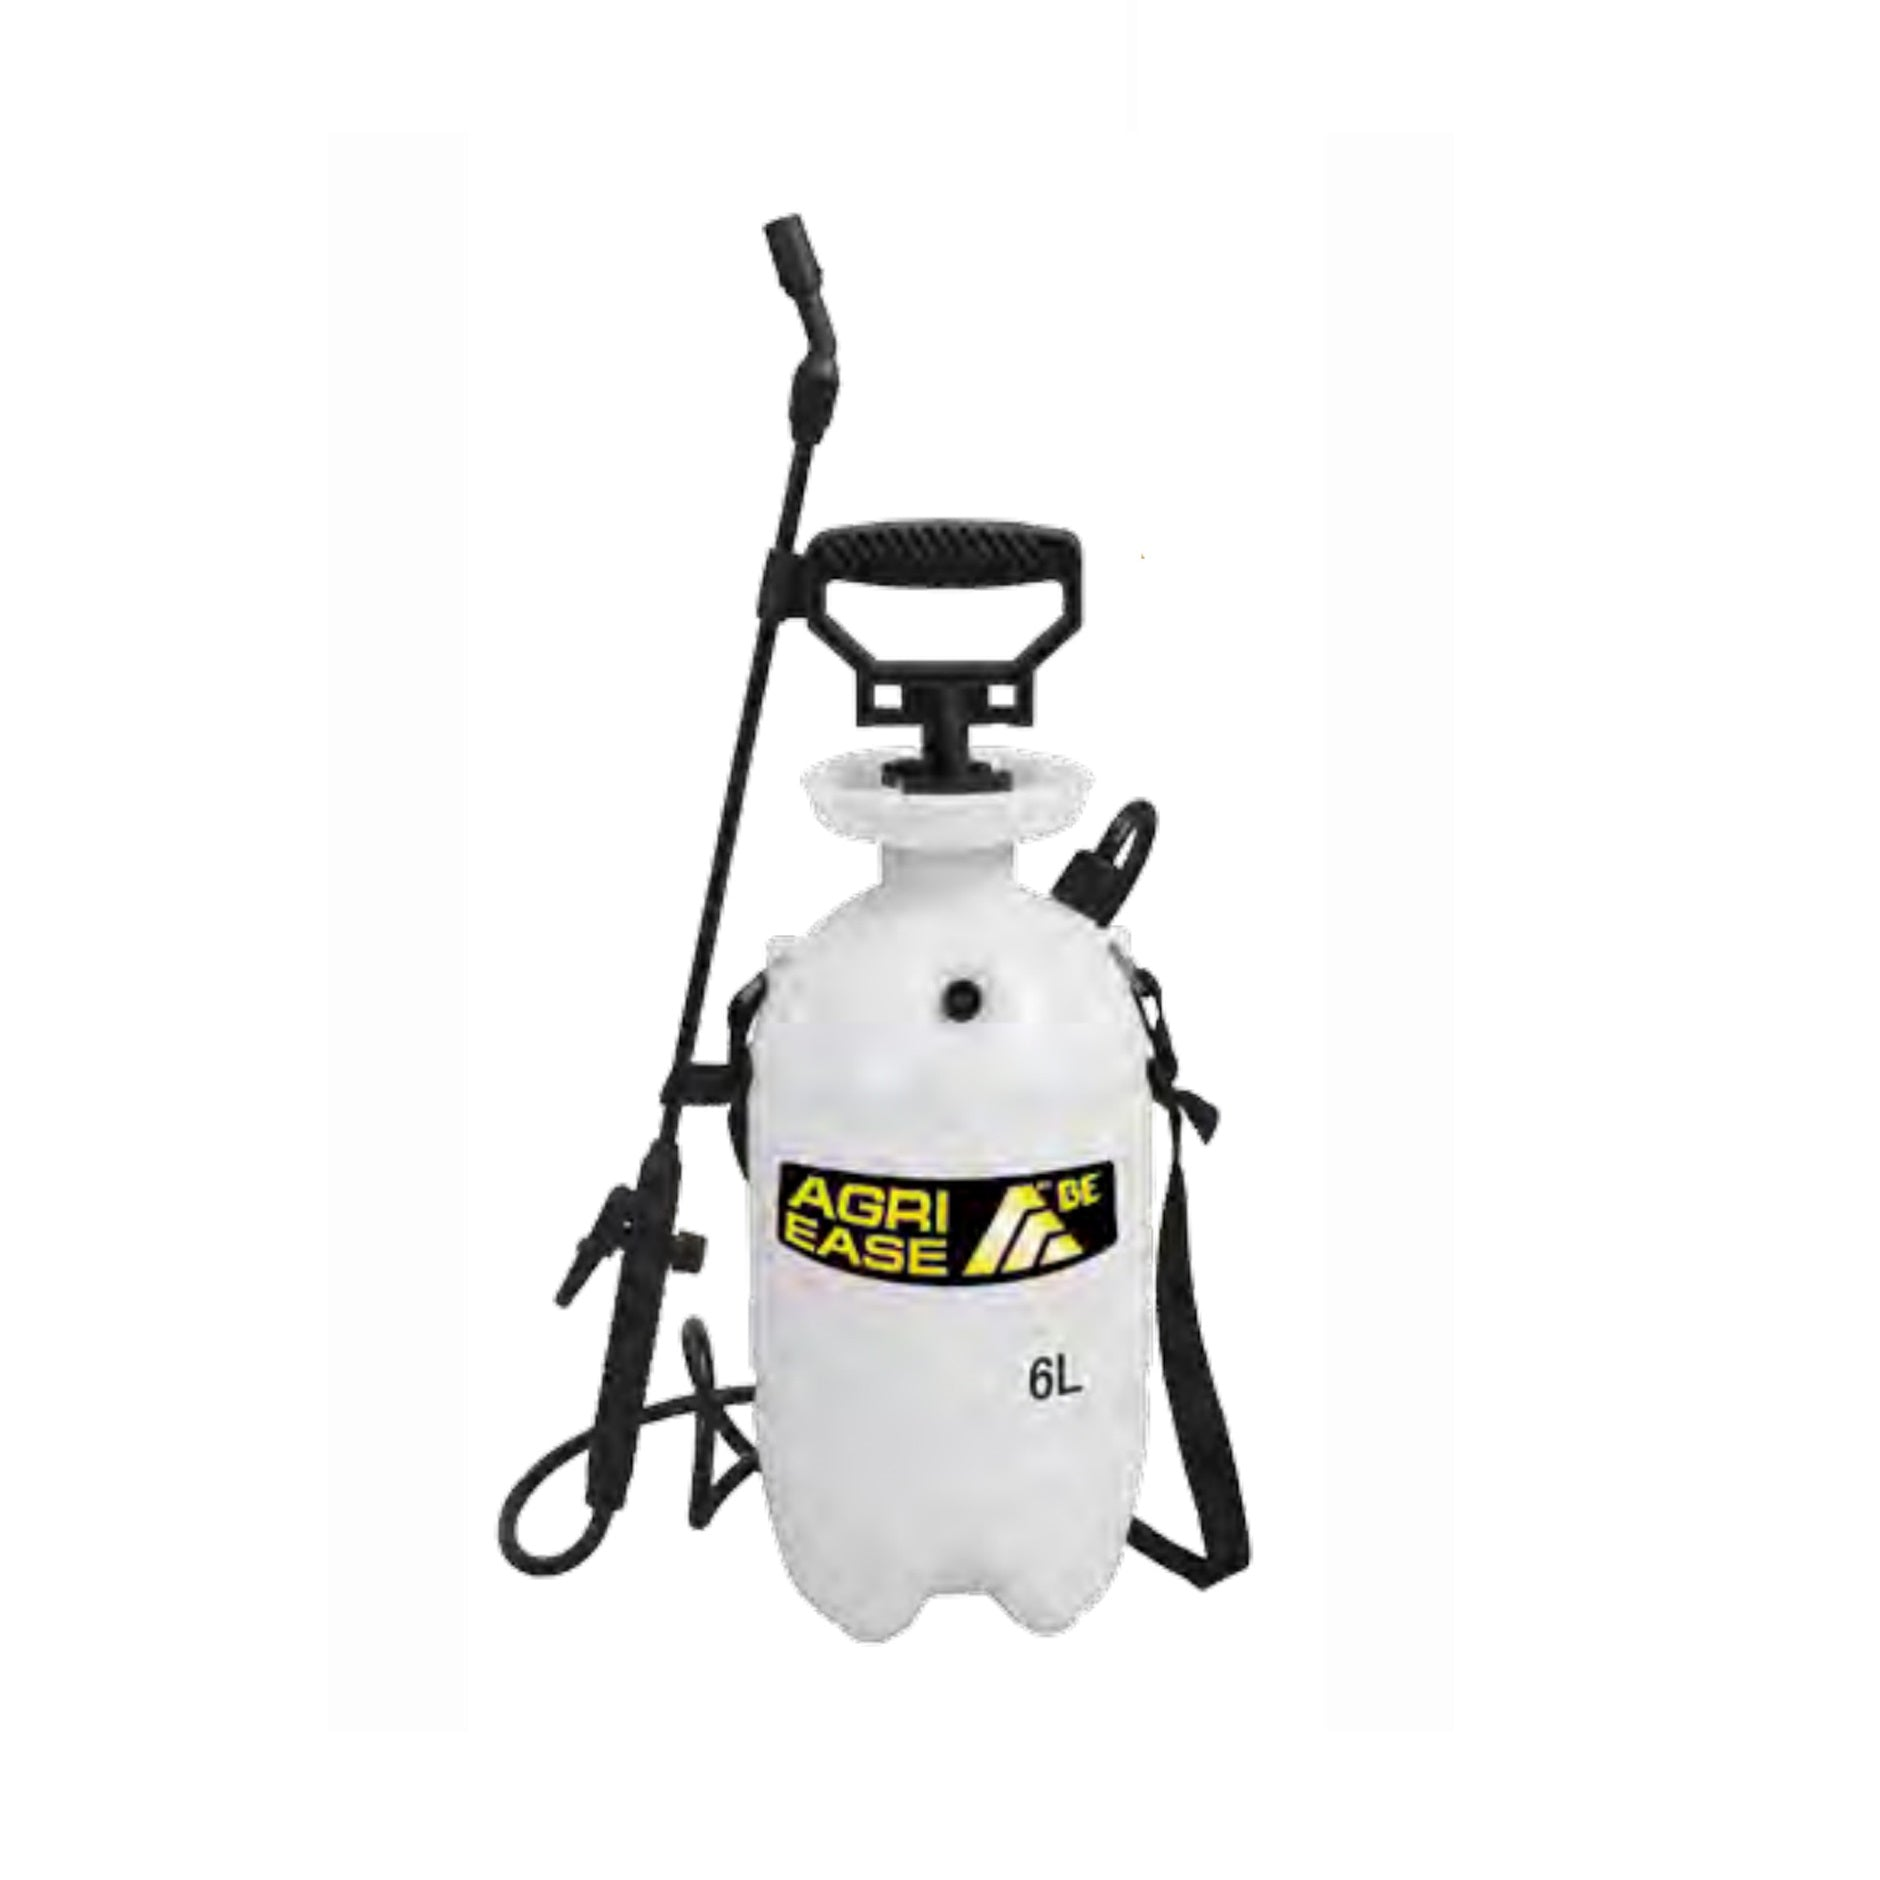 BE Handheld Pump Sprayer 6L (1.59 Gal)